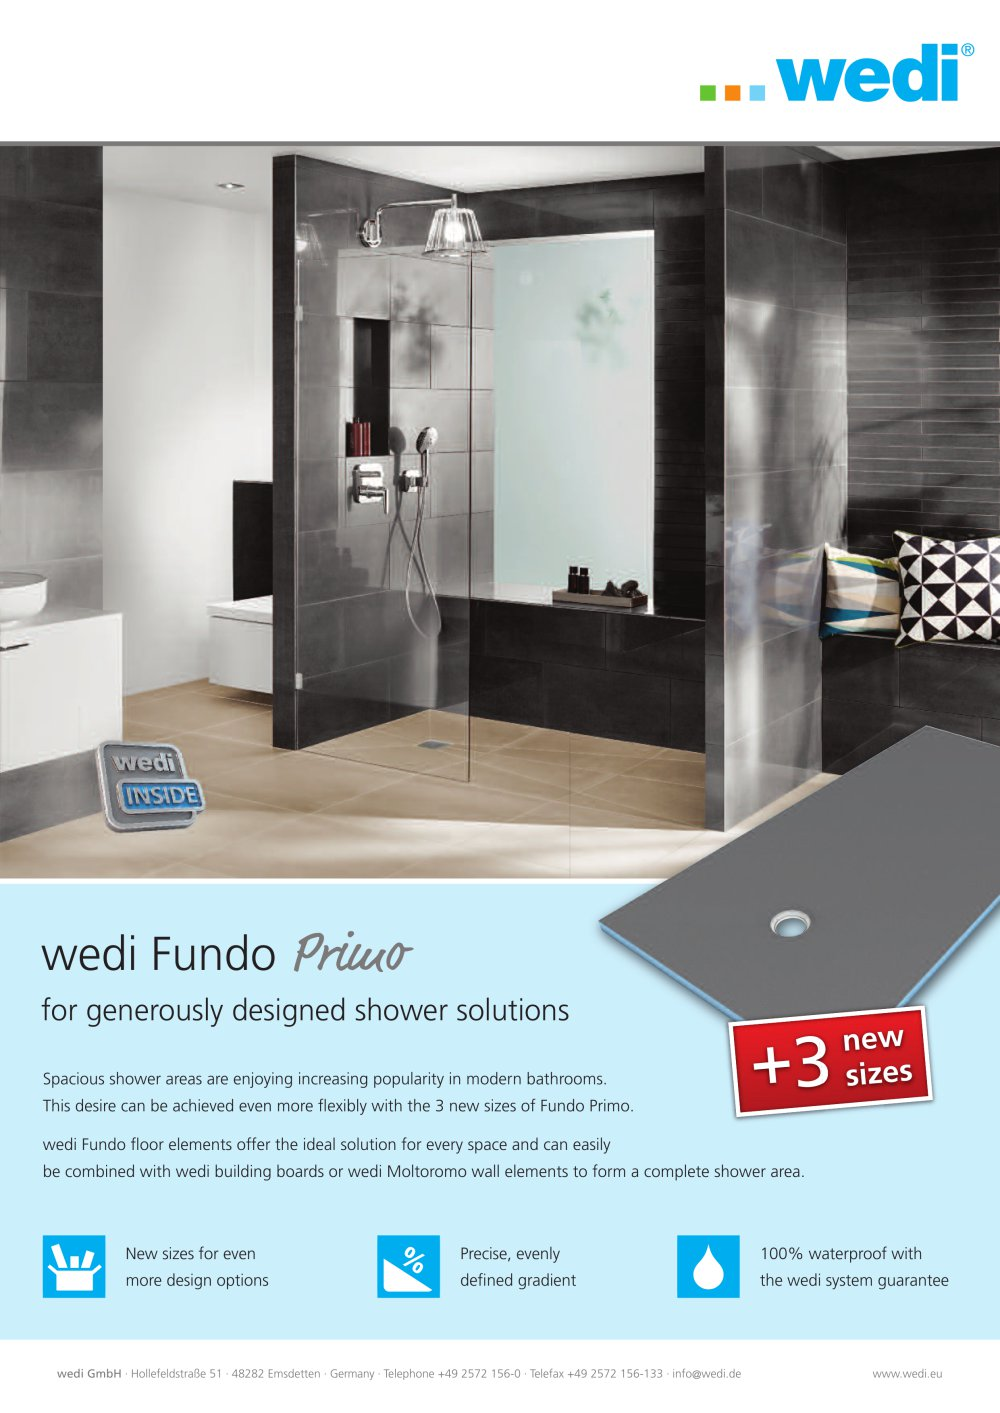 Wedi Emsdetten fundo primo dimensions wedi gmbh pdf catalogues documentation